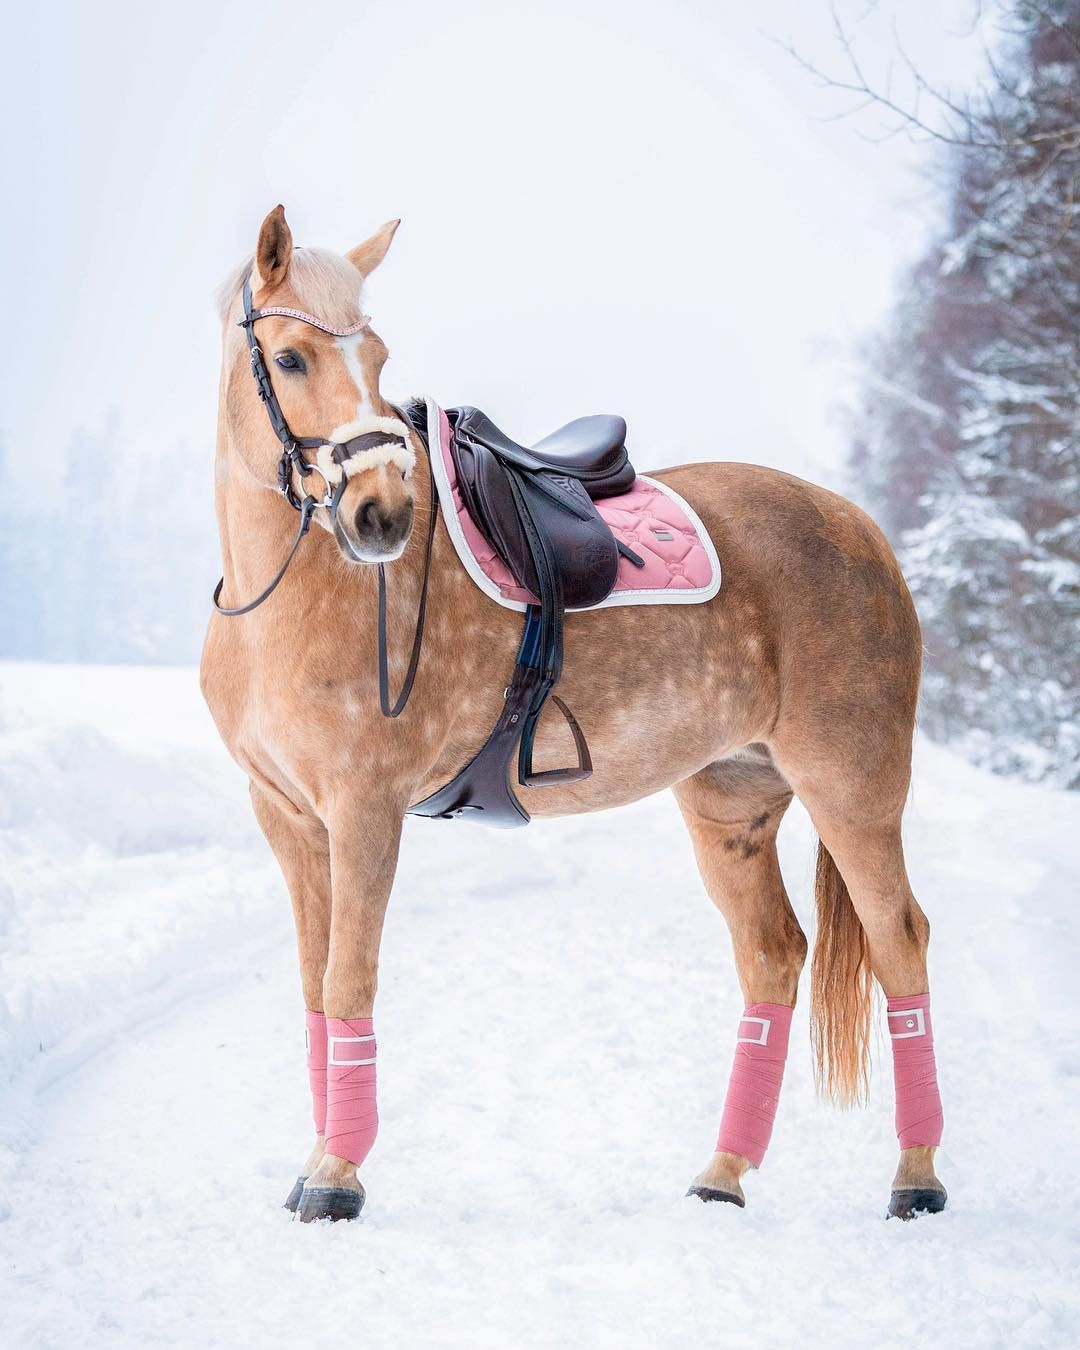 How Cute Does Goldi Look All Dressed Up In Her New Rose Saddlepad Sponsored By Psofsweden Matching Bandages And Browband With Pale Pink Con Imagenes Caballos